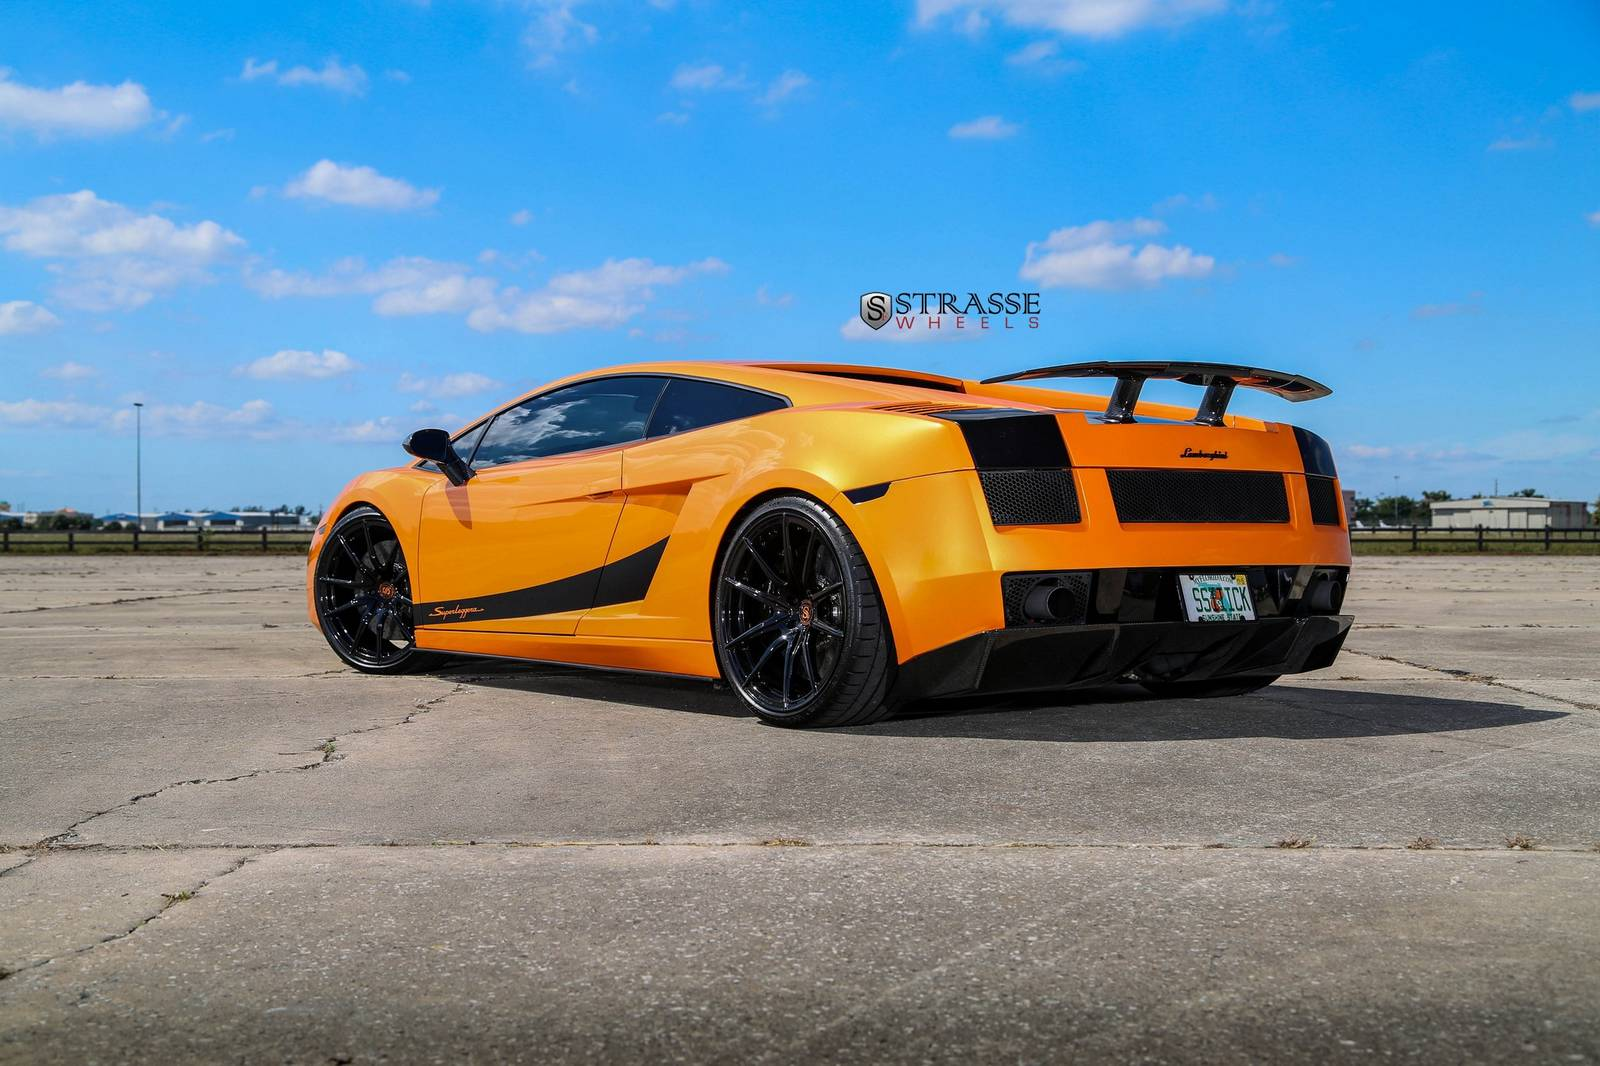 tuningcars arancio borealis lamborghini gallardo superleggera with strasse wheels. Black Bedroom Furniture Sets. Home Design Ideas